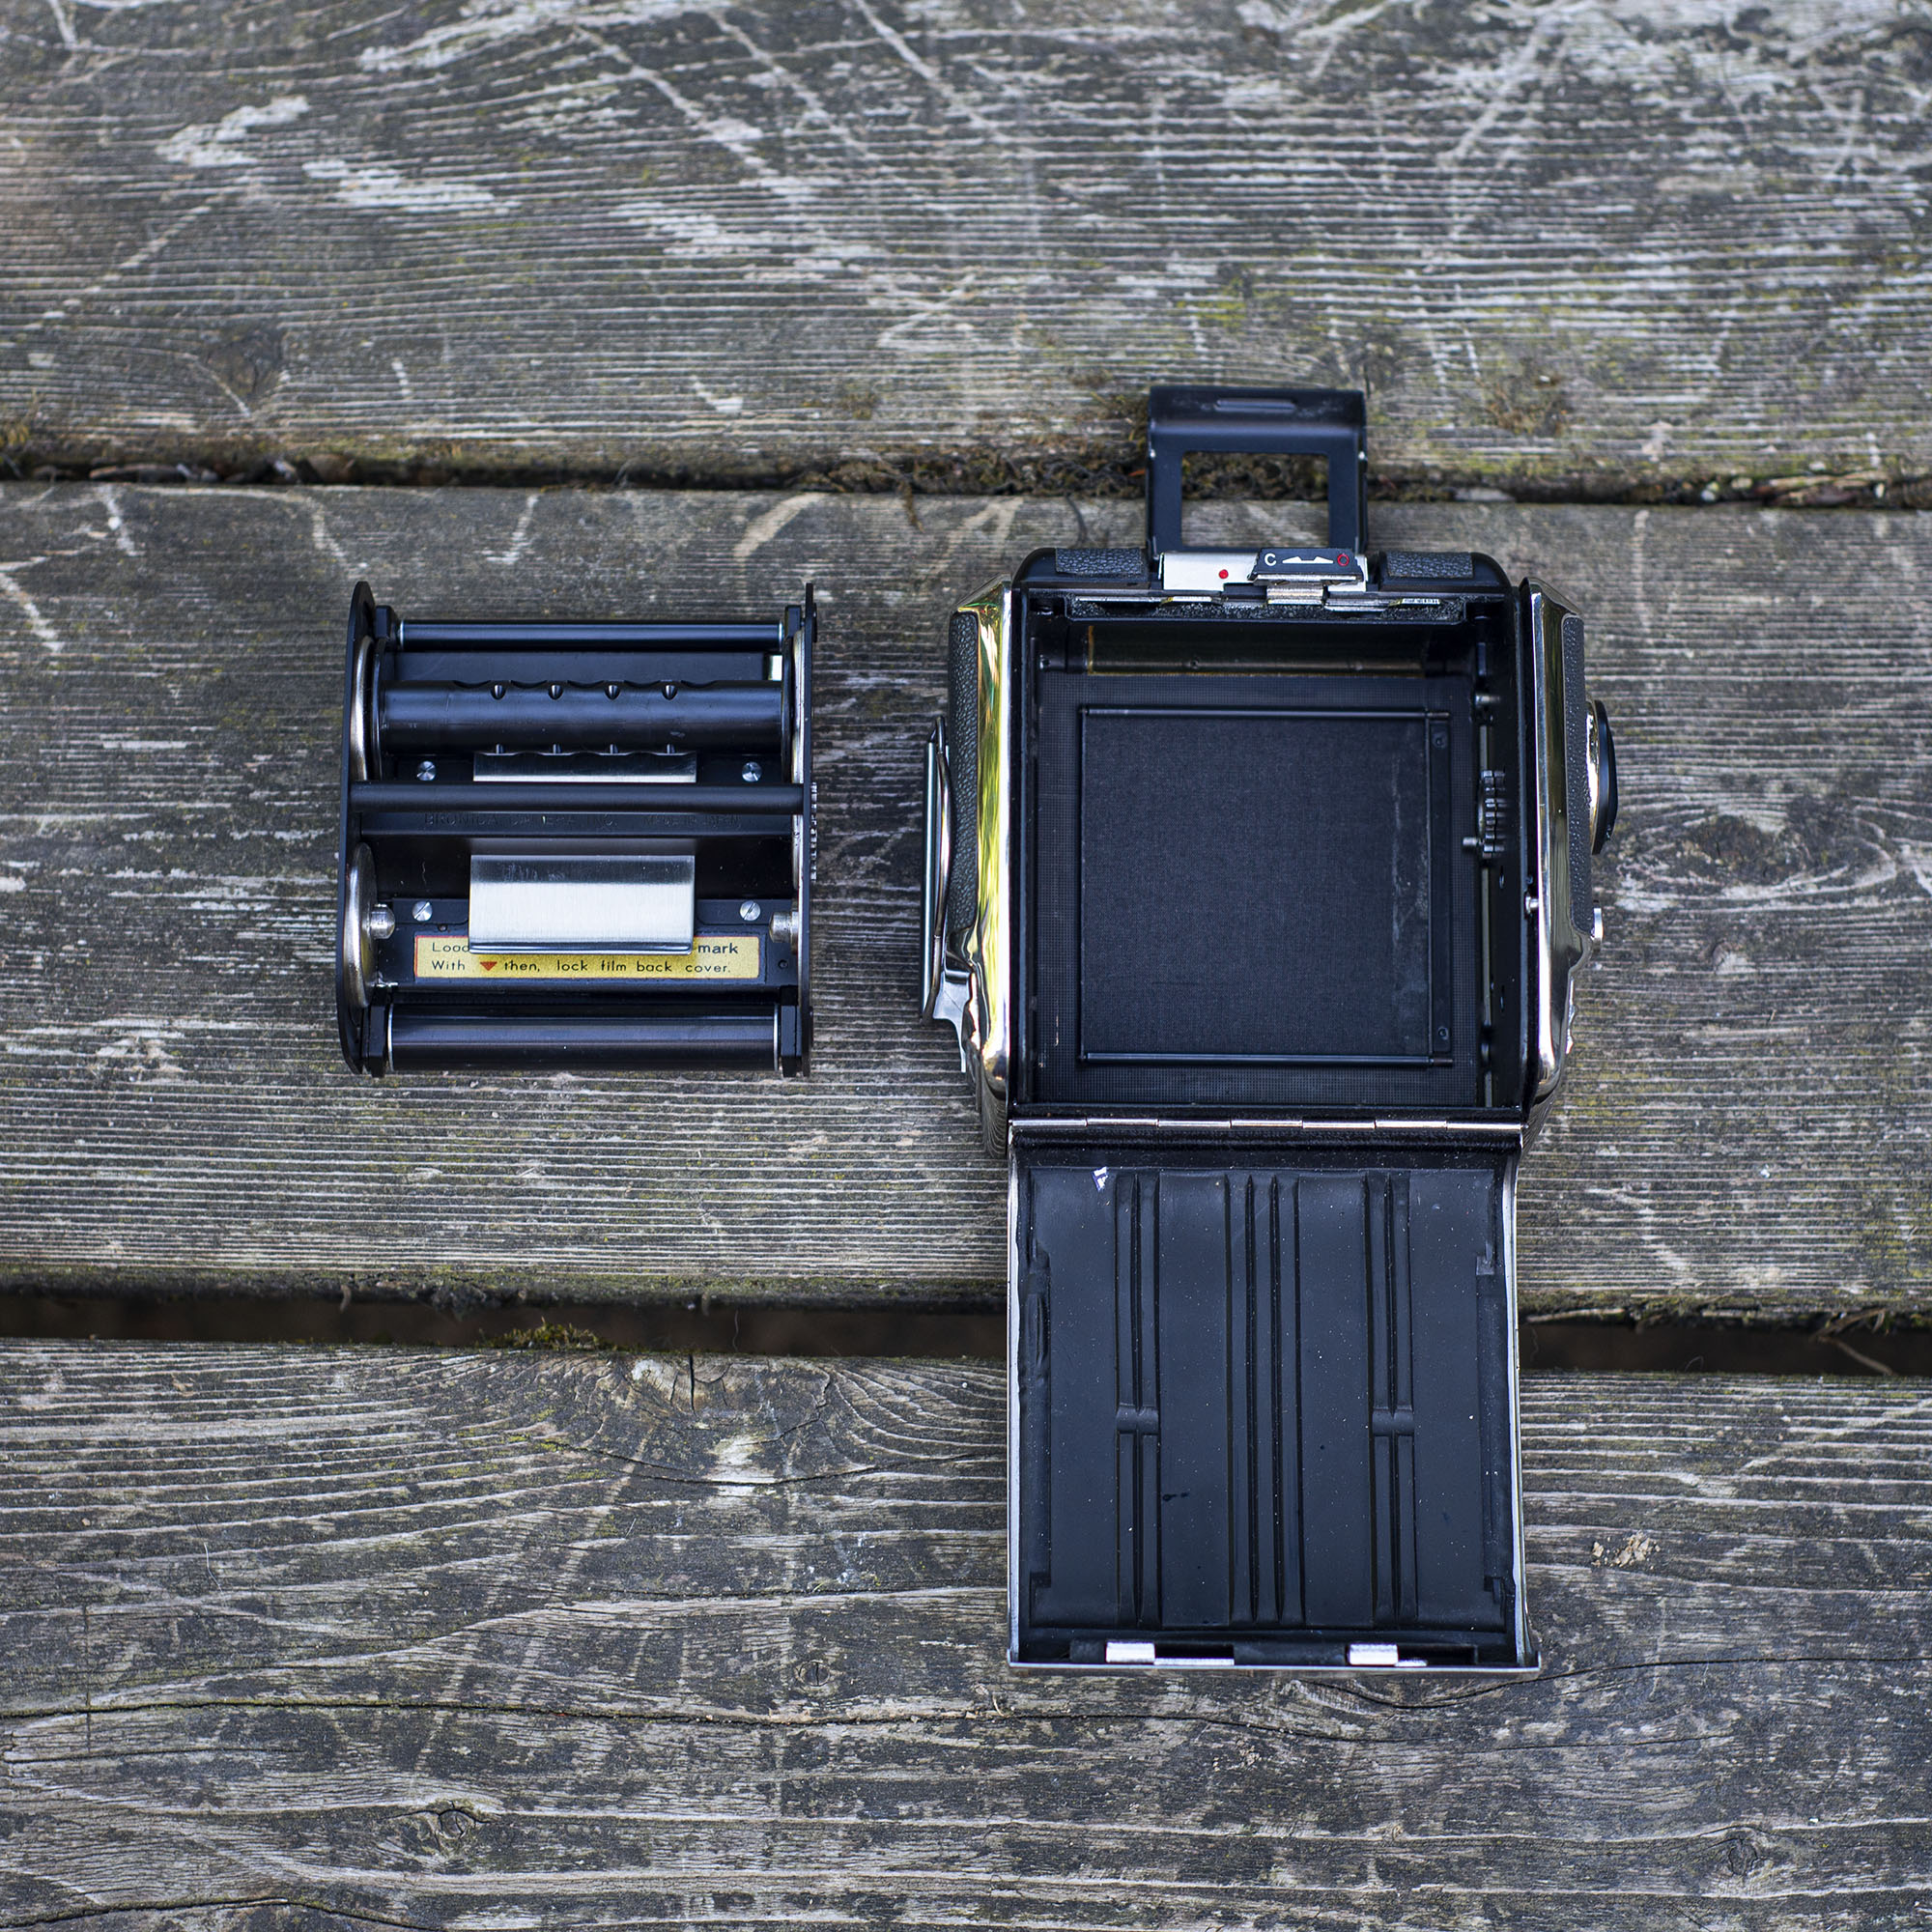 Bronica S2 fim back open with the film magazine out